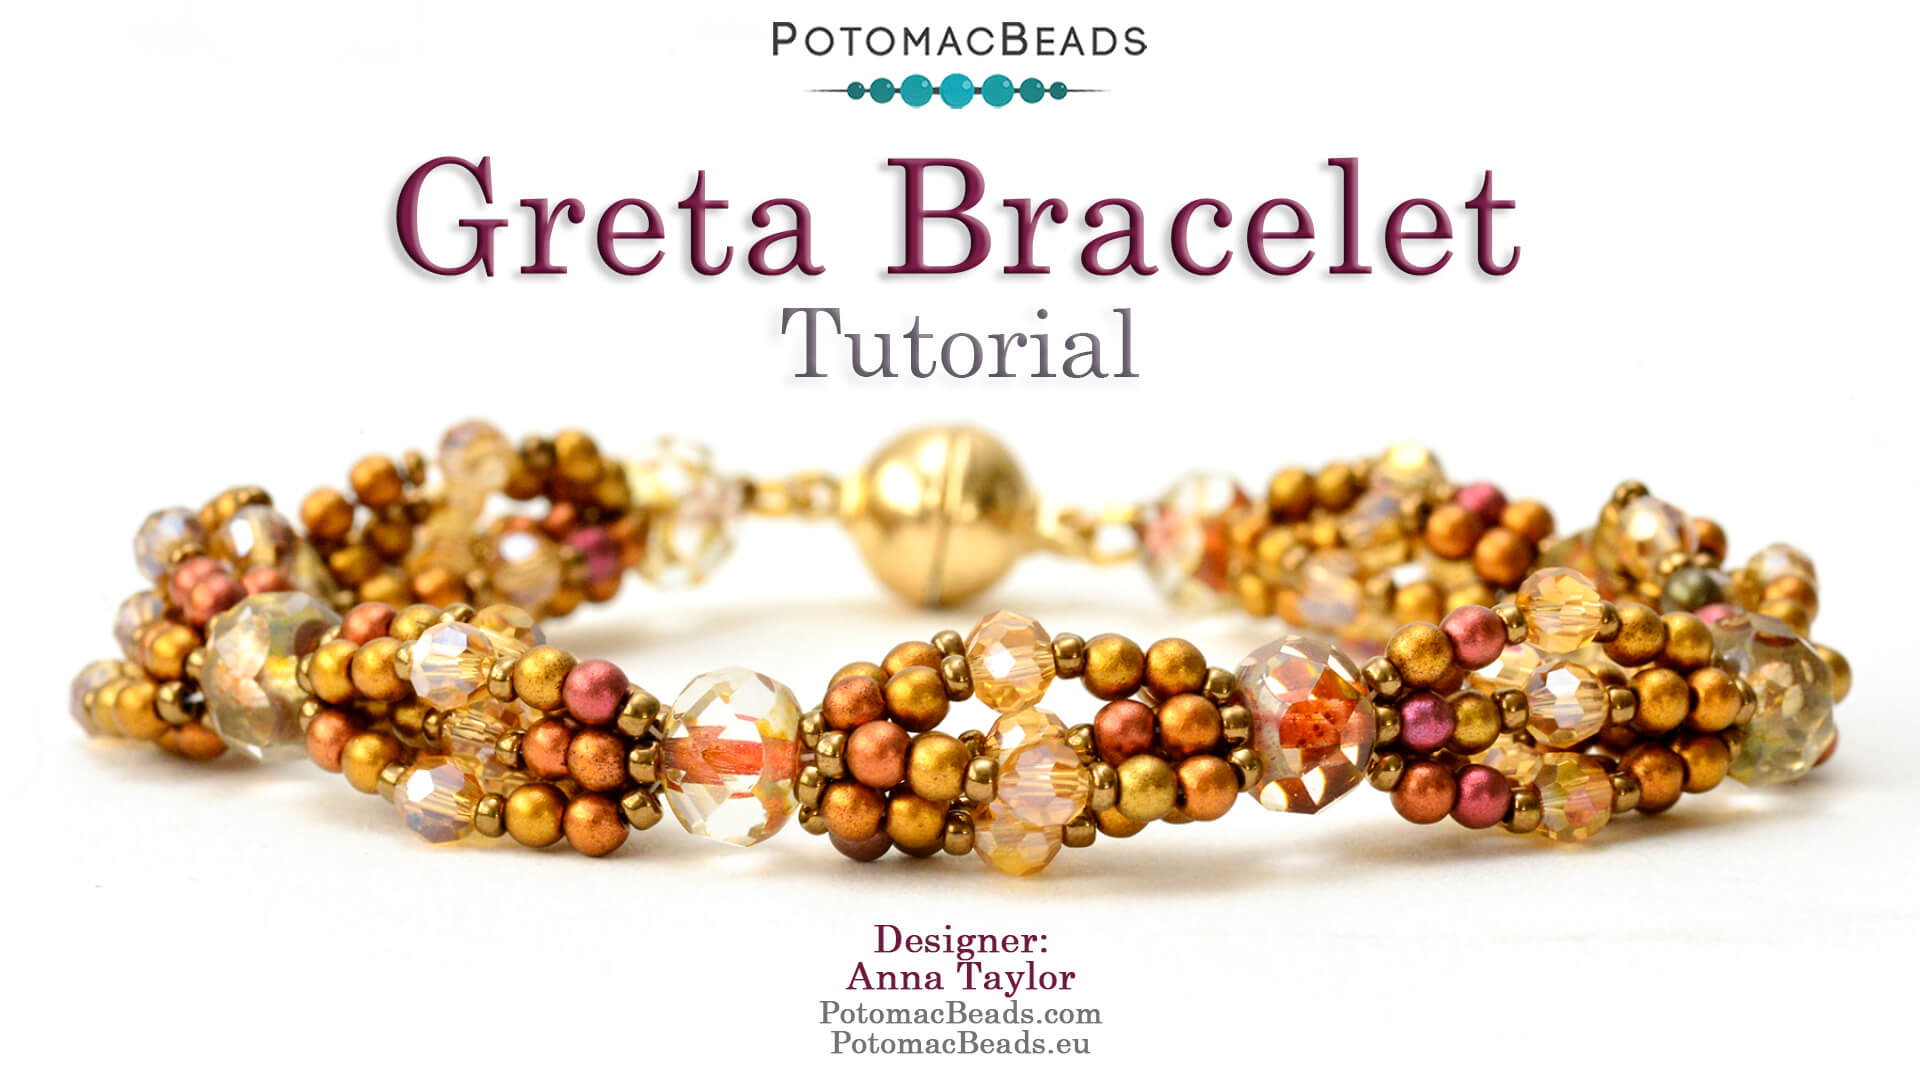 How to Bead Jewelry / Videos Sorted by Beads / Pearl Videos (Czech, Freshwater, Potomac Pearls) / Greta Bracelet  Tutorial